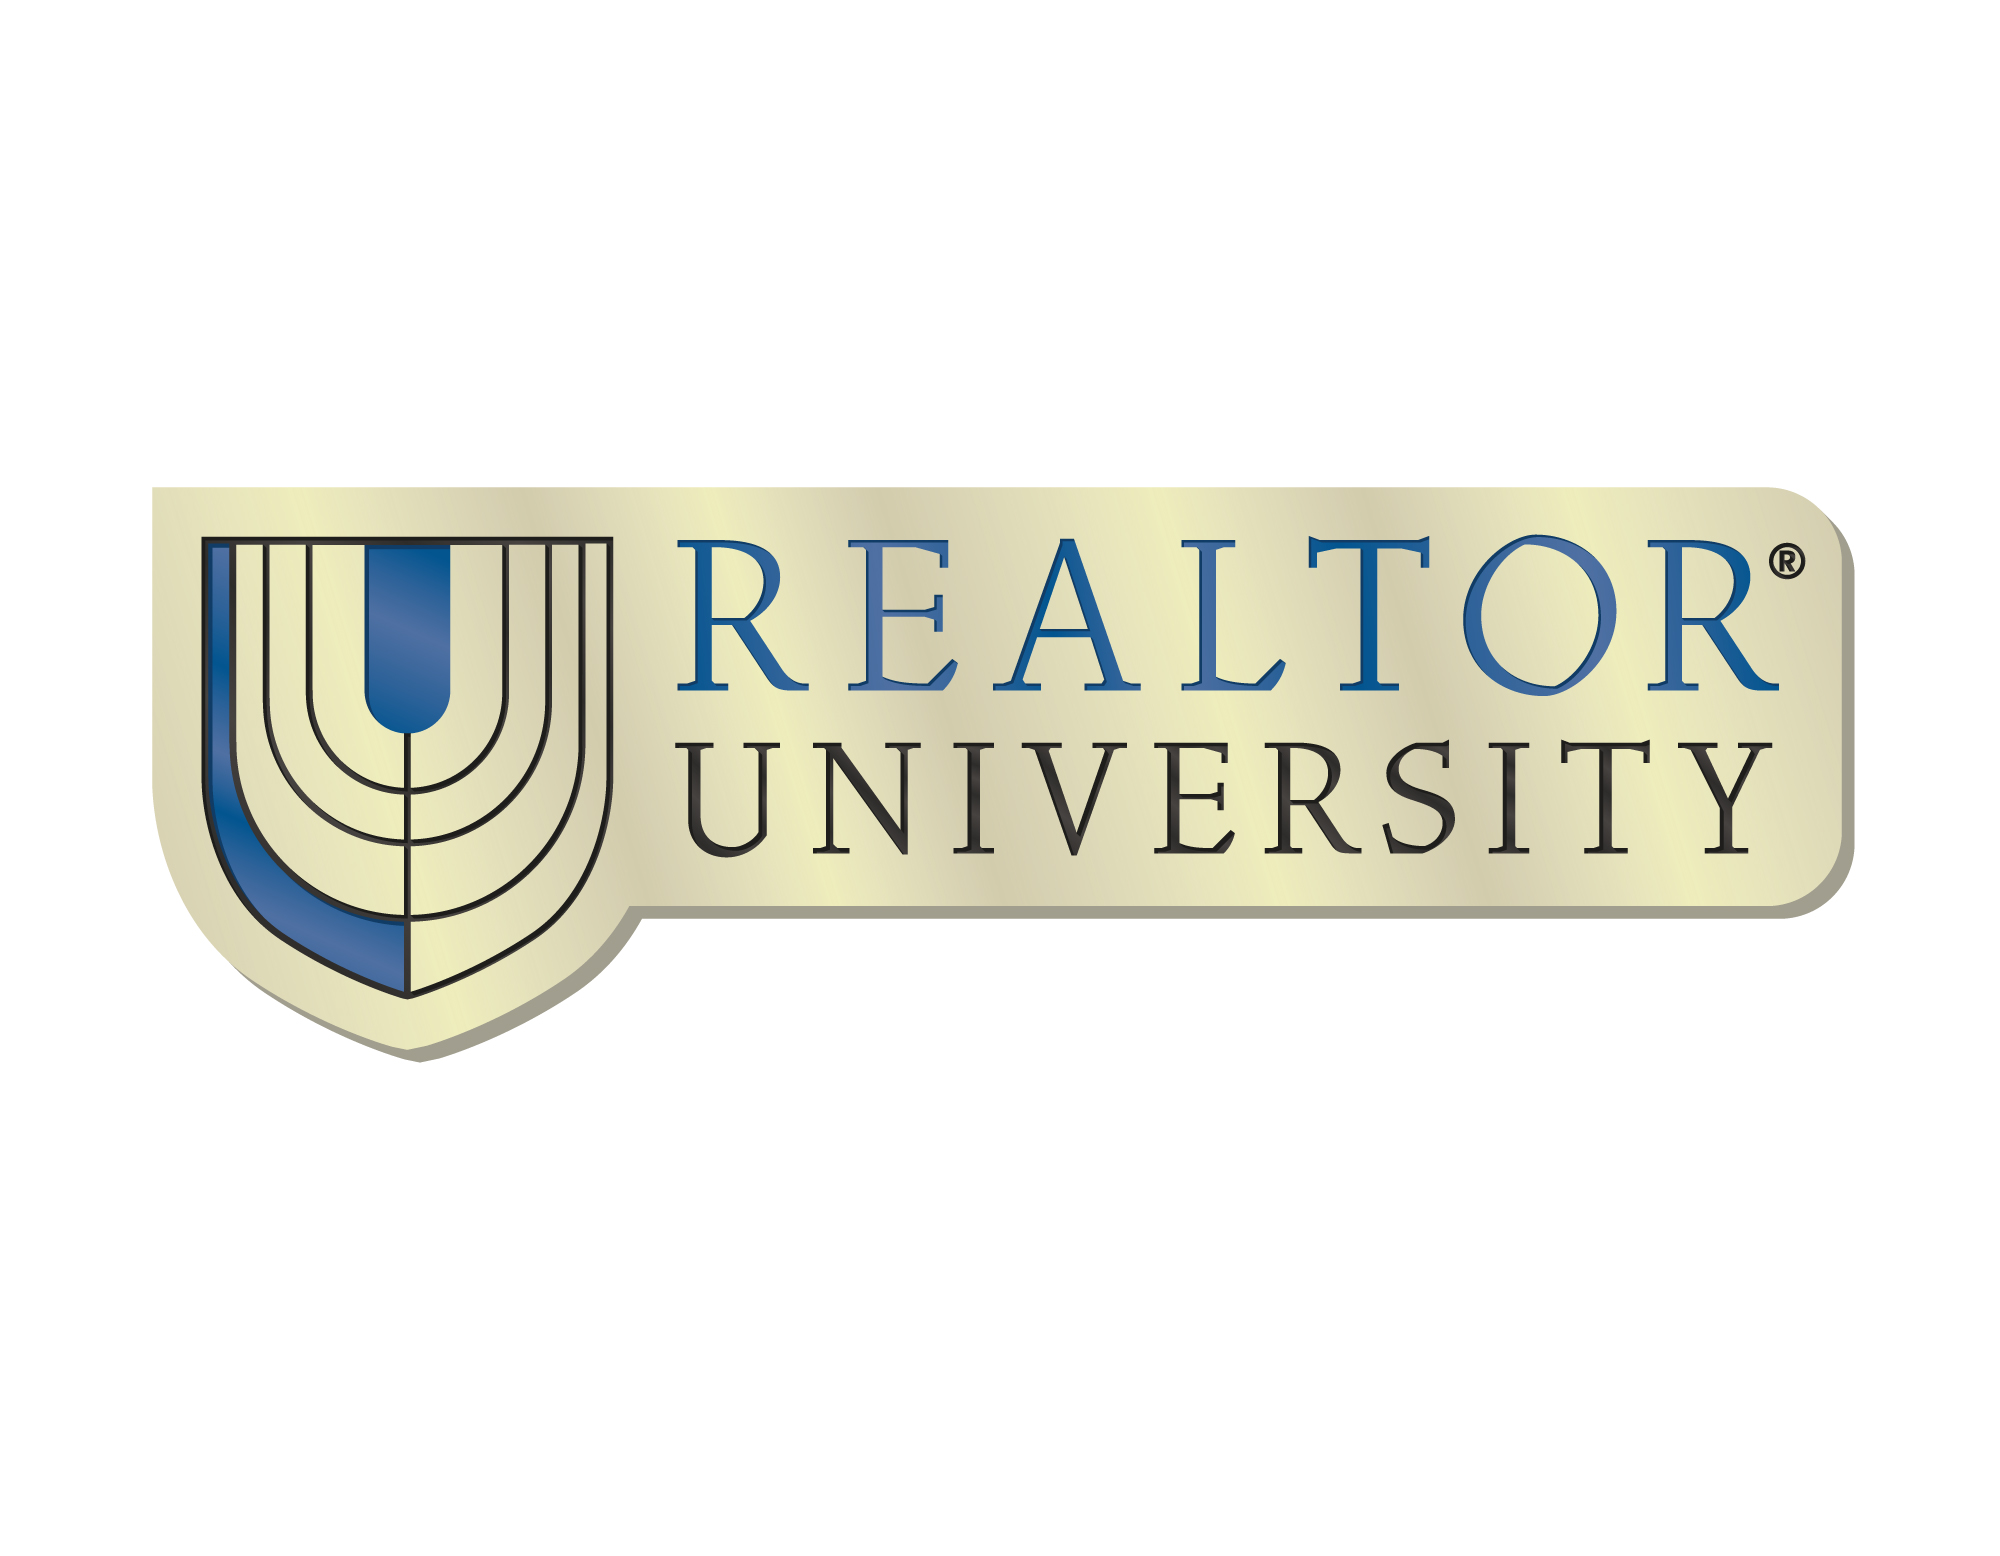 REALTOR University Lapel Pin